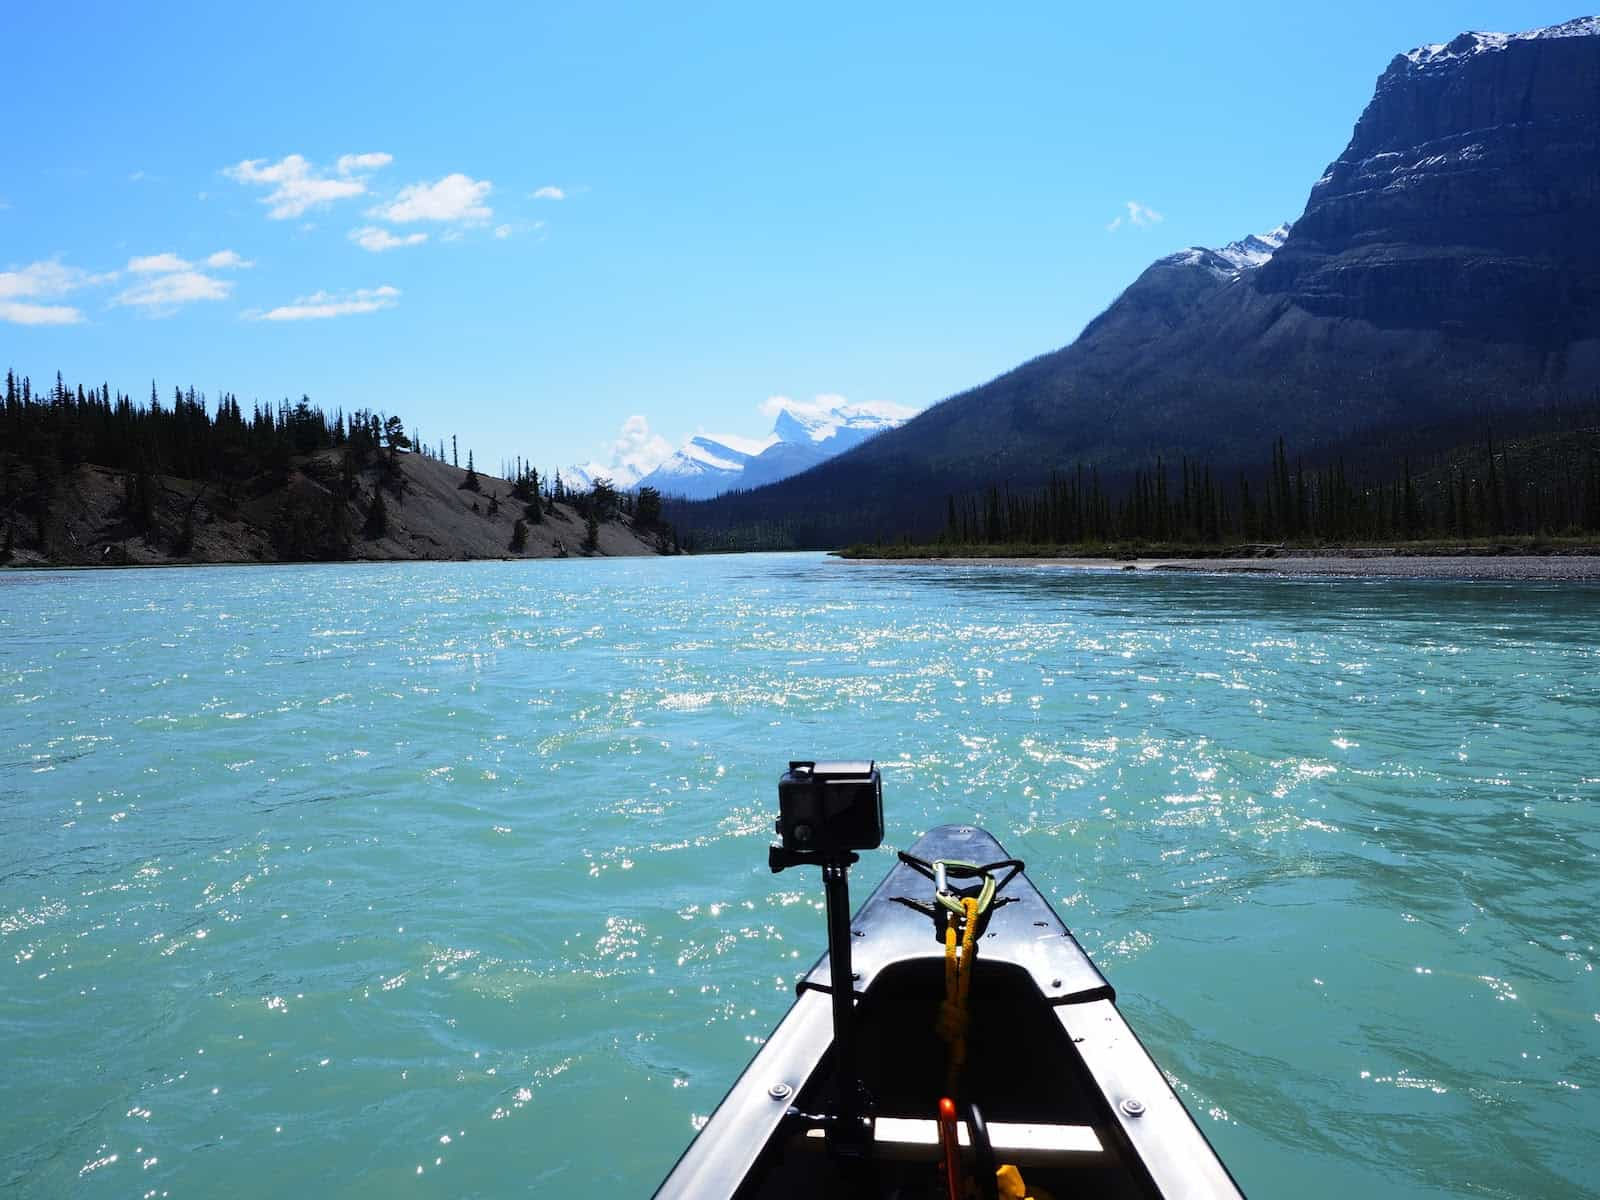 Nahanni River by Canoe: A GoPro attached to the front of a boat.